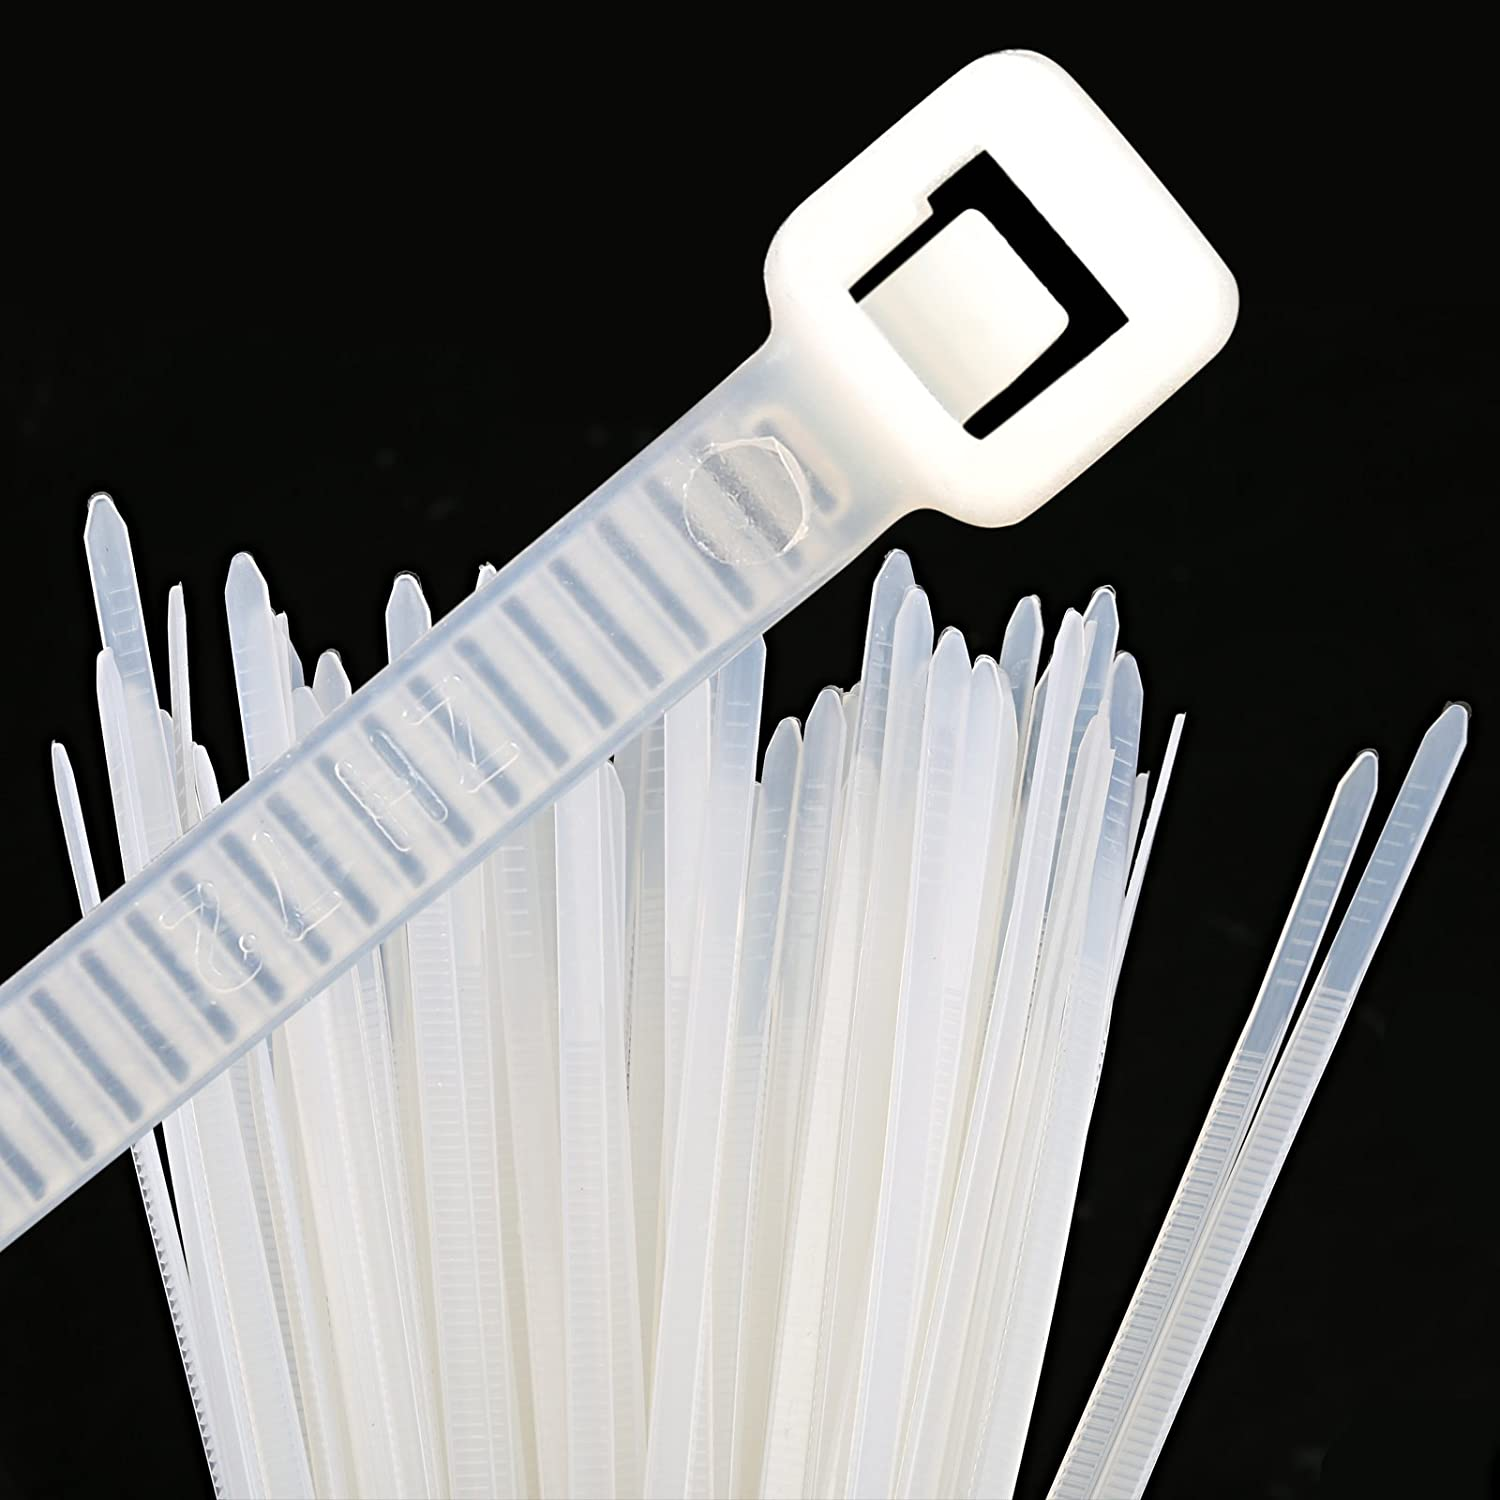 Blanc 100 // 150 // 180 // 200 // 300 mm GWHOLE Lot de 500 Attaches de Cable Autobloquant Liens Nylon Zip Cable Ties